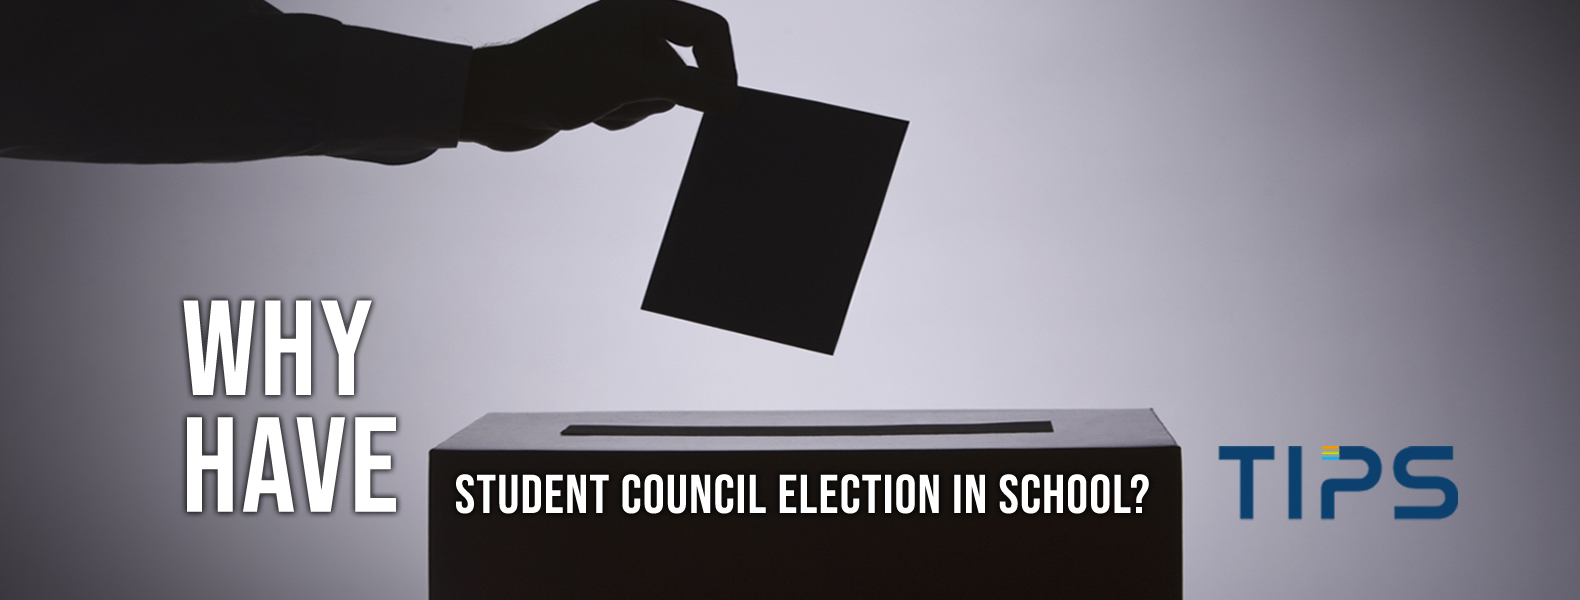 Why have students council election in school TIPS